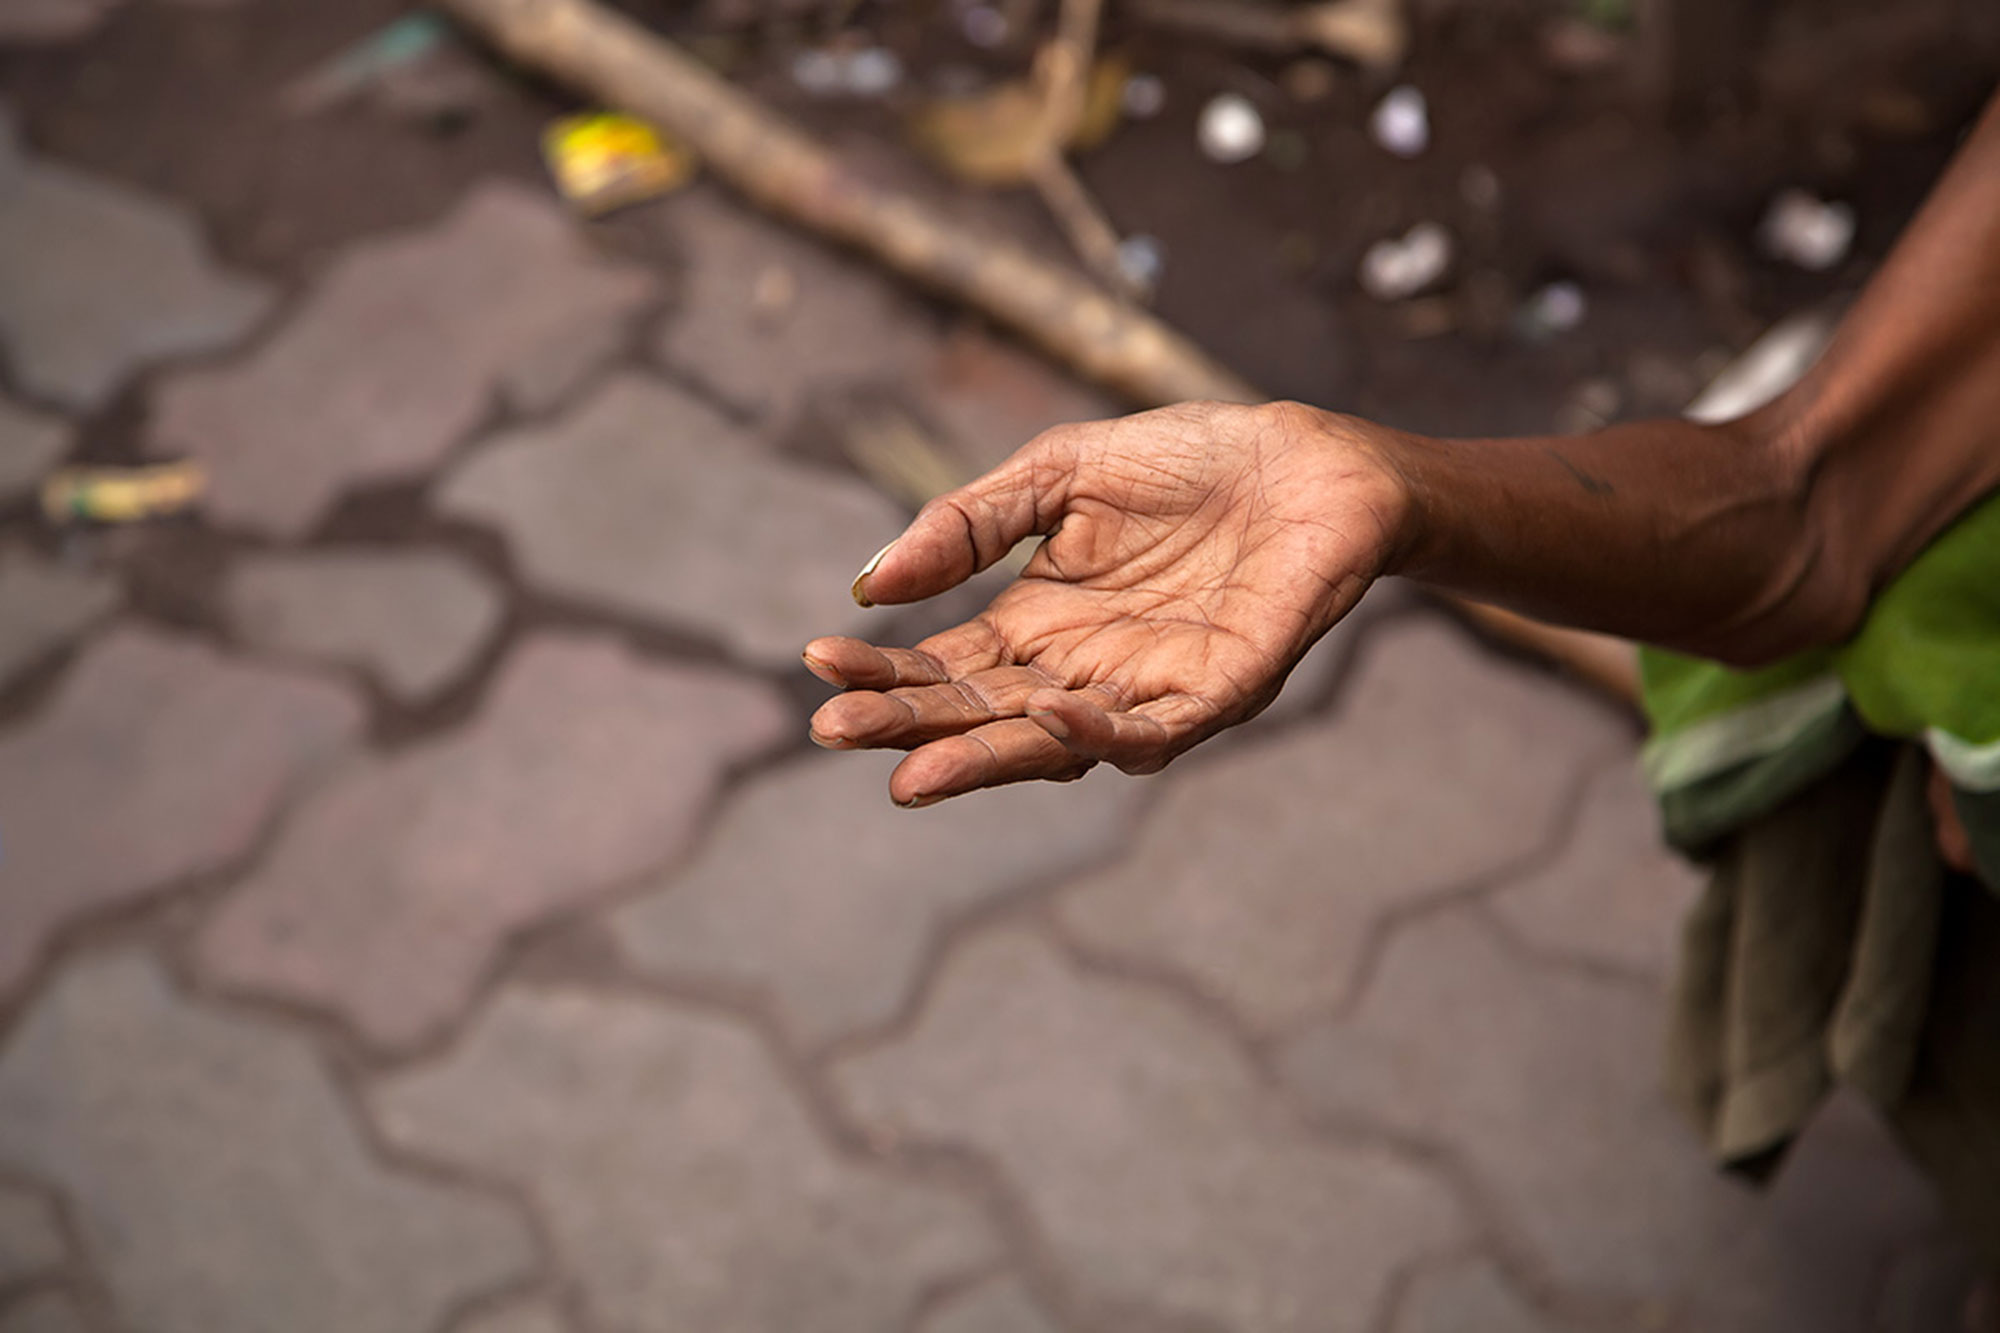 Hand of a begging woman in the streets of Kolkata, India. © Ulli Maier & Nisa Maier